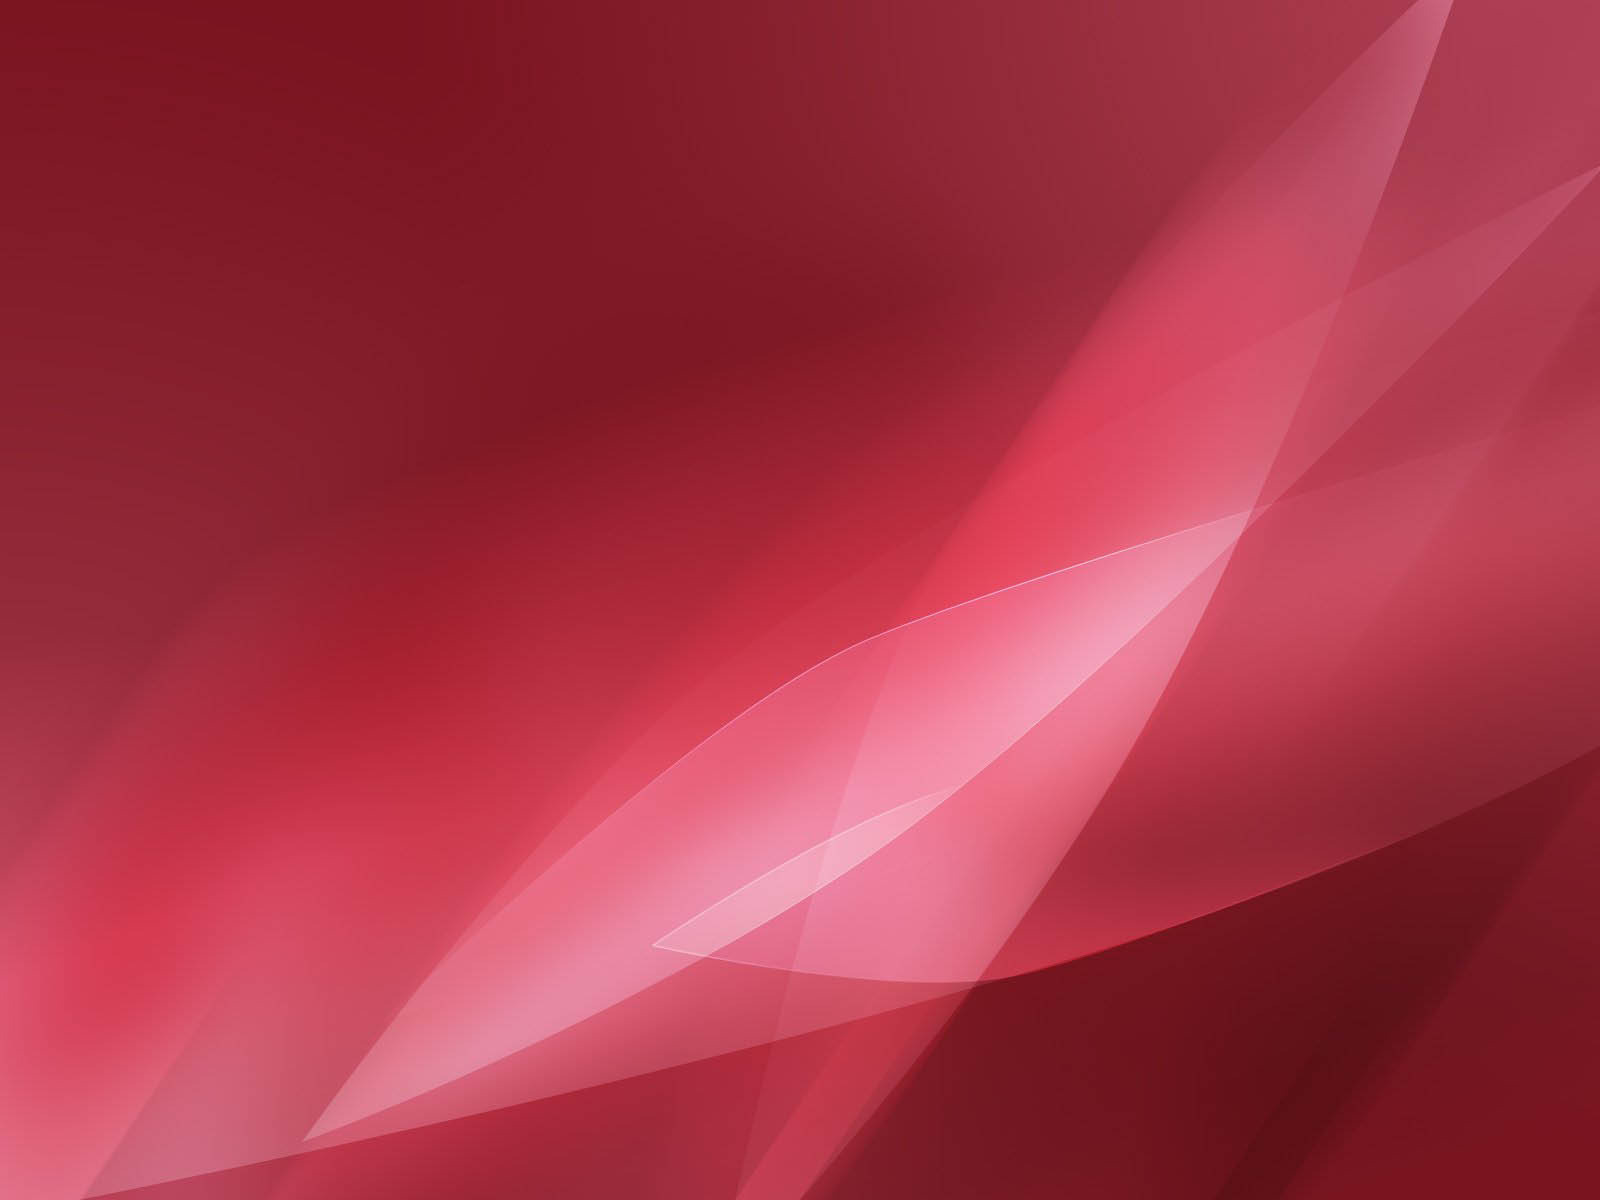 Tag Abstract Red Wallpapers Backgrounds Paos Pictures and Images 1600x1200